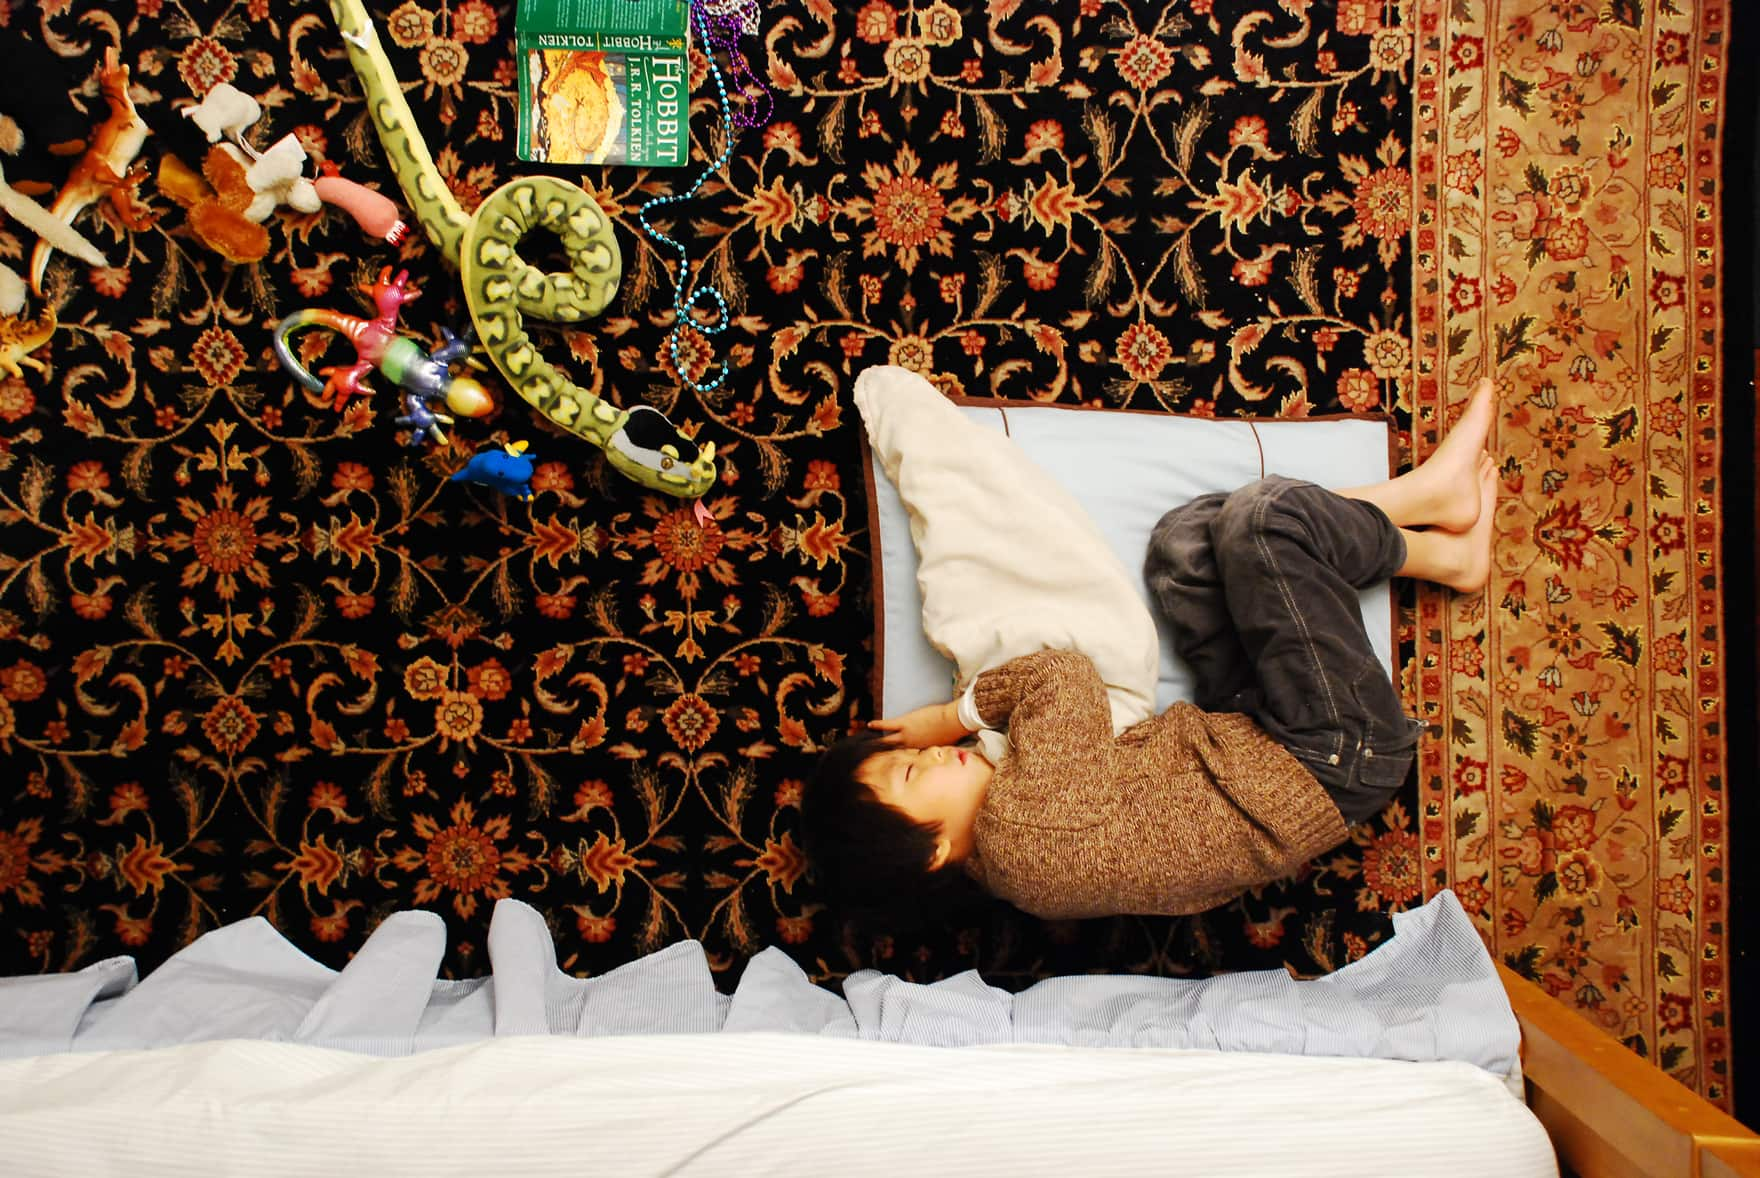 Child sleeps cuddled on a pillow on a carpeted floor while his toys are moving towards him